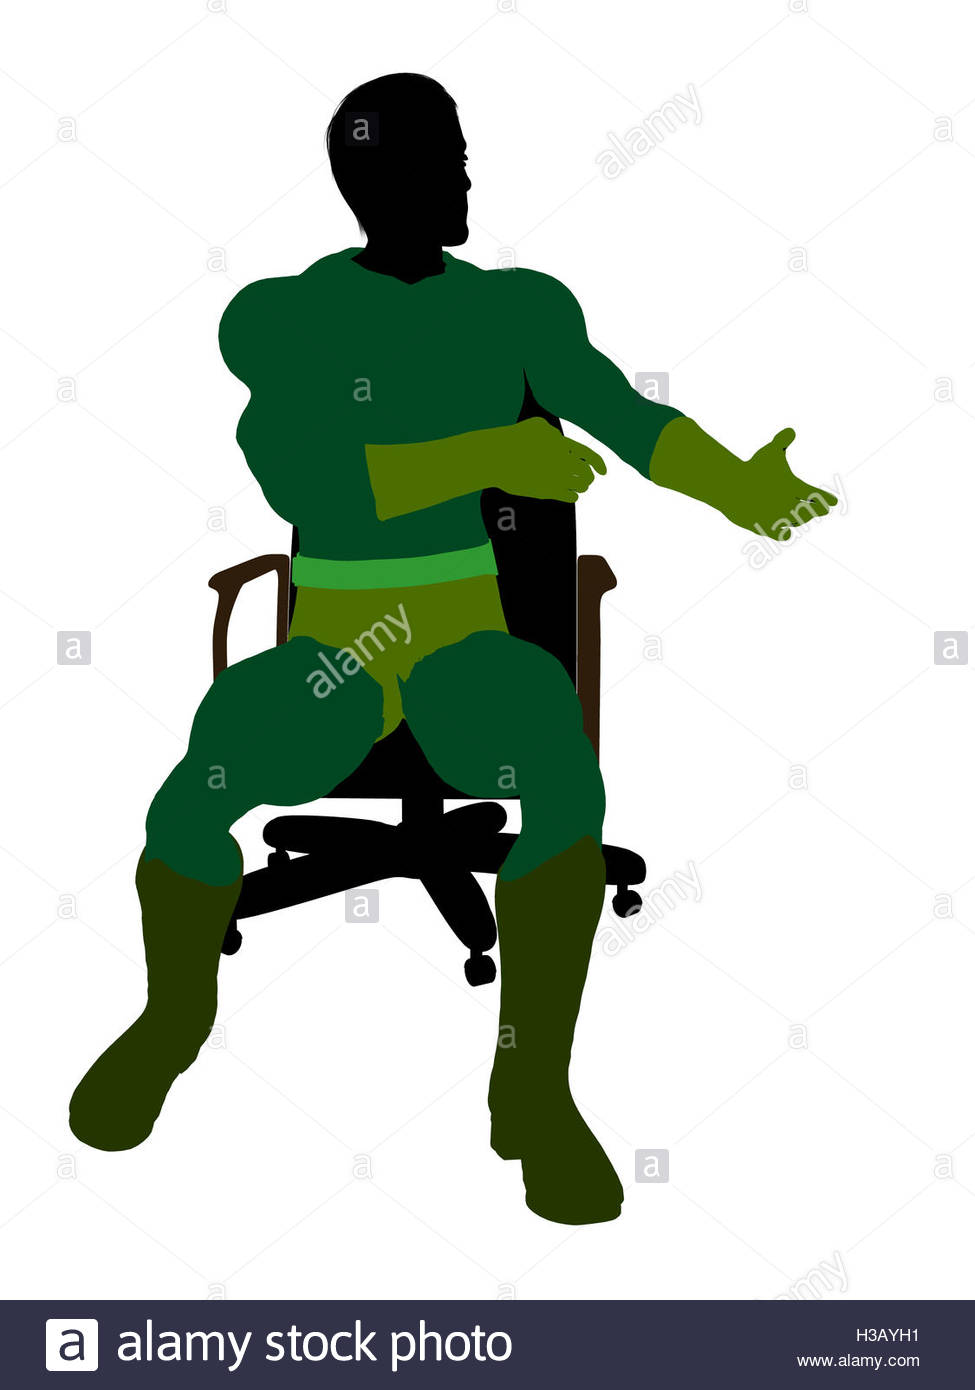 975x1390 Male Super Hero Sitting On A Chair Illustration Silhouette Stock